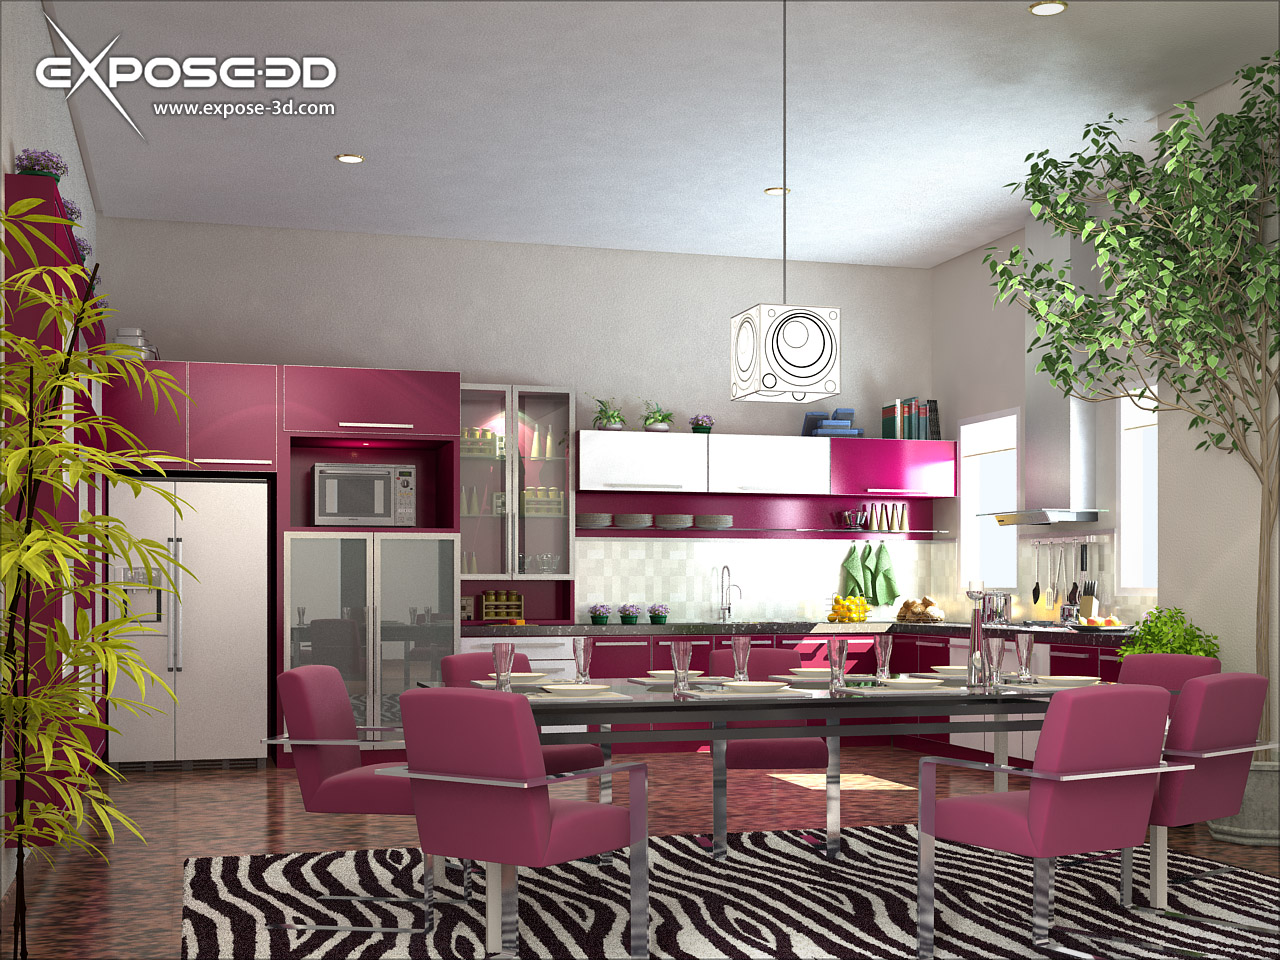 Wallpapers background interior decoration of kitchen for Kitchen decoration pink